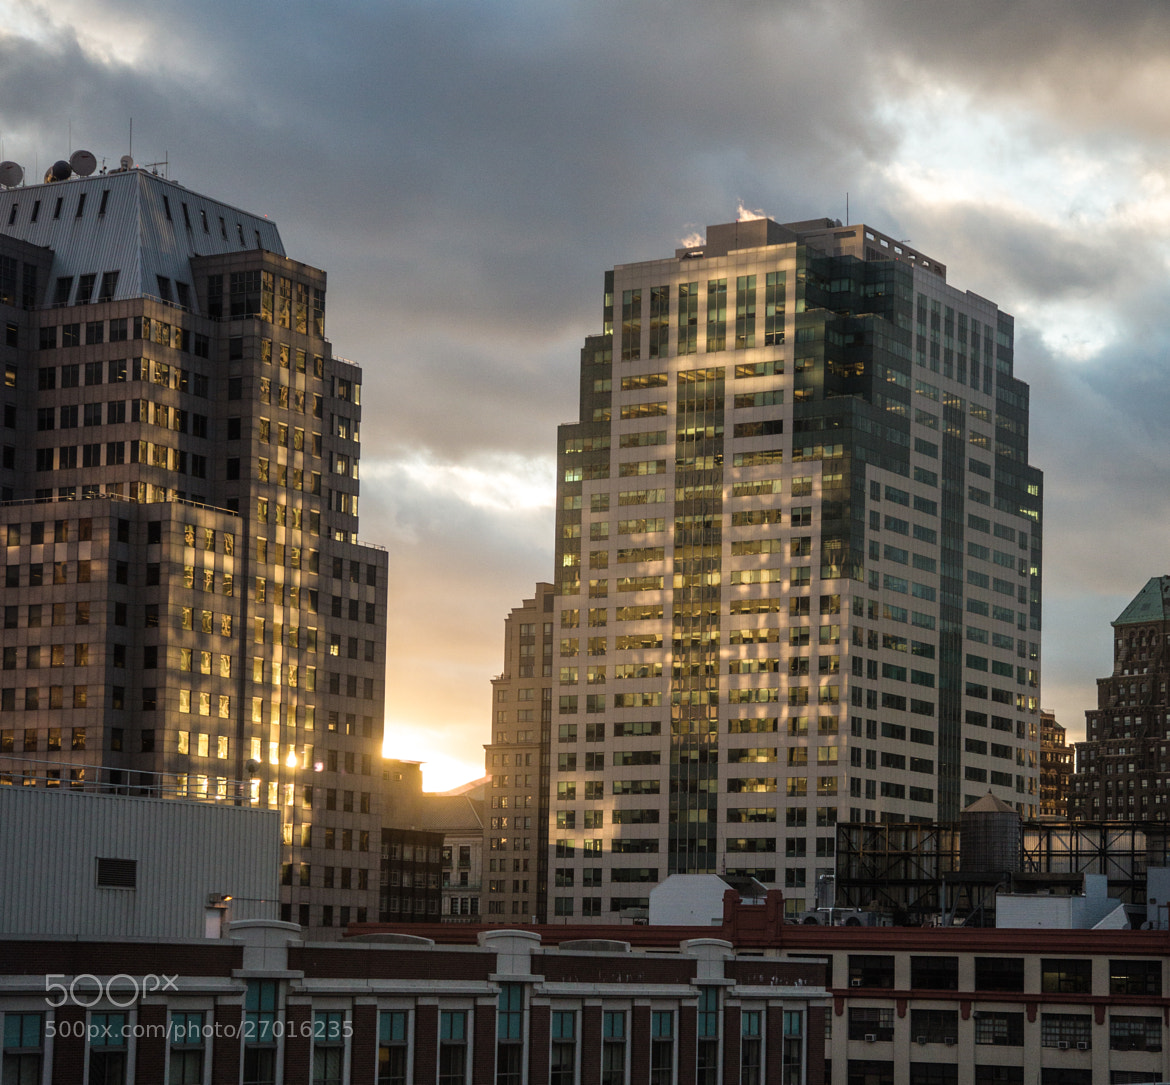 Photograph Sunset Reflections on Buildings by Scott Nelson on 500px